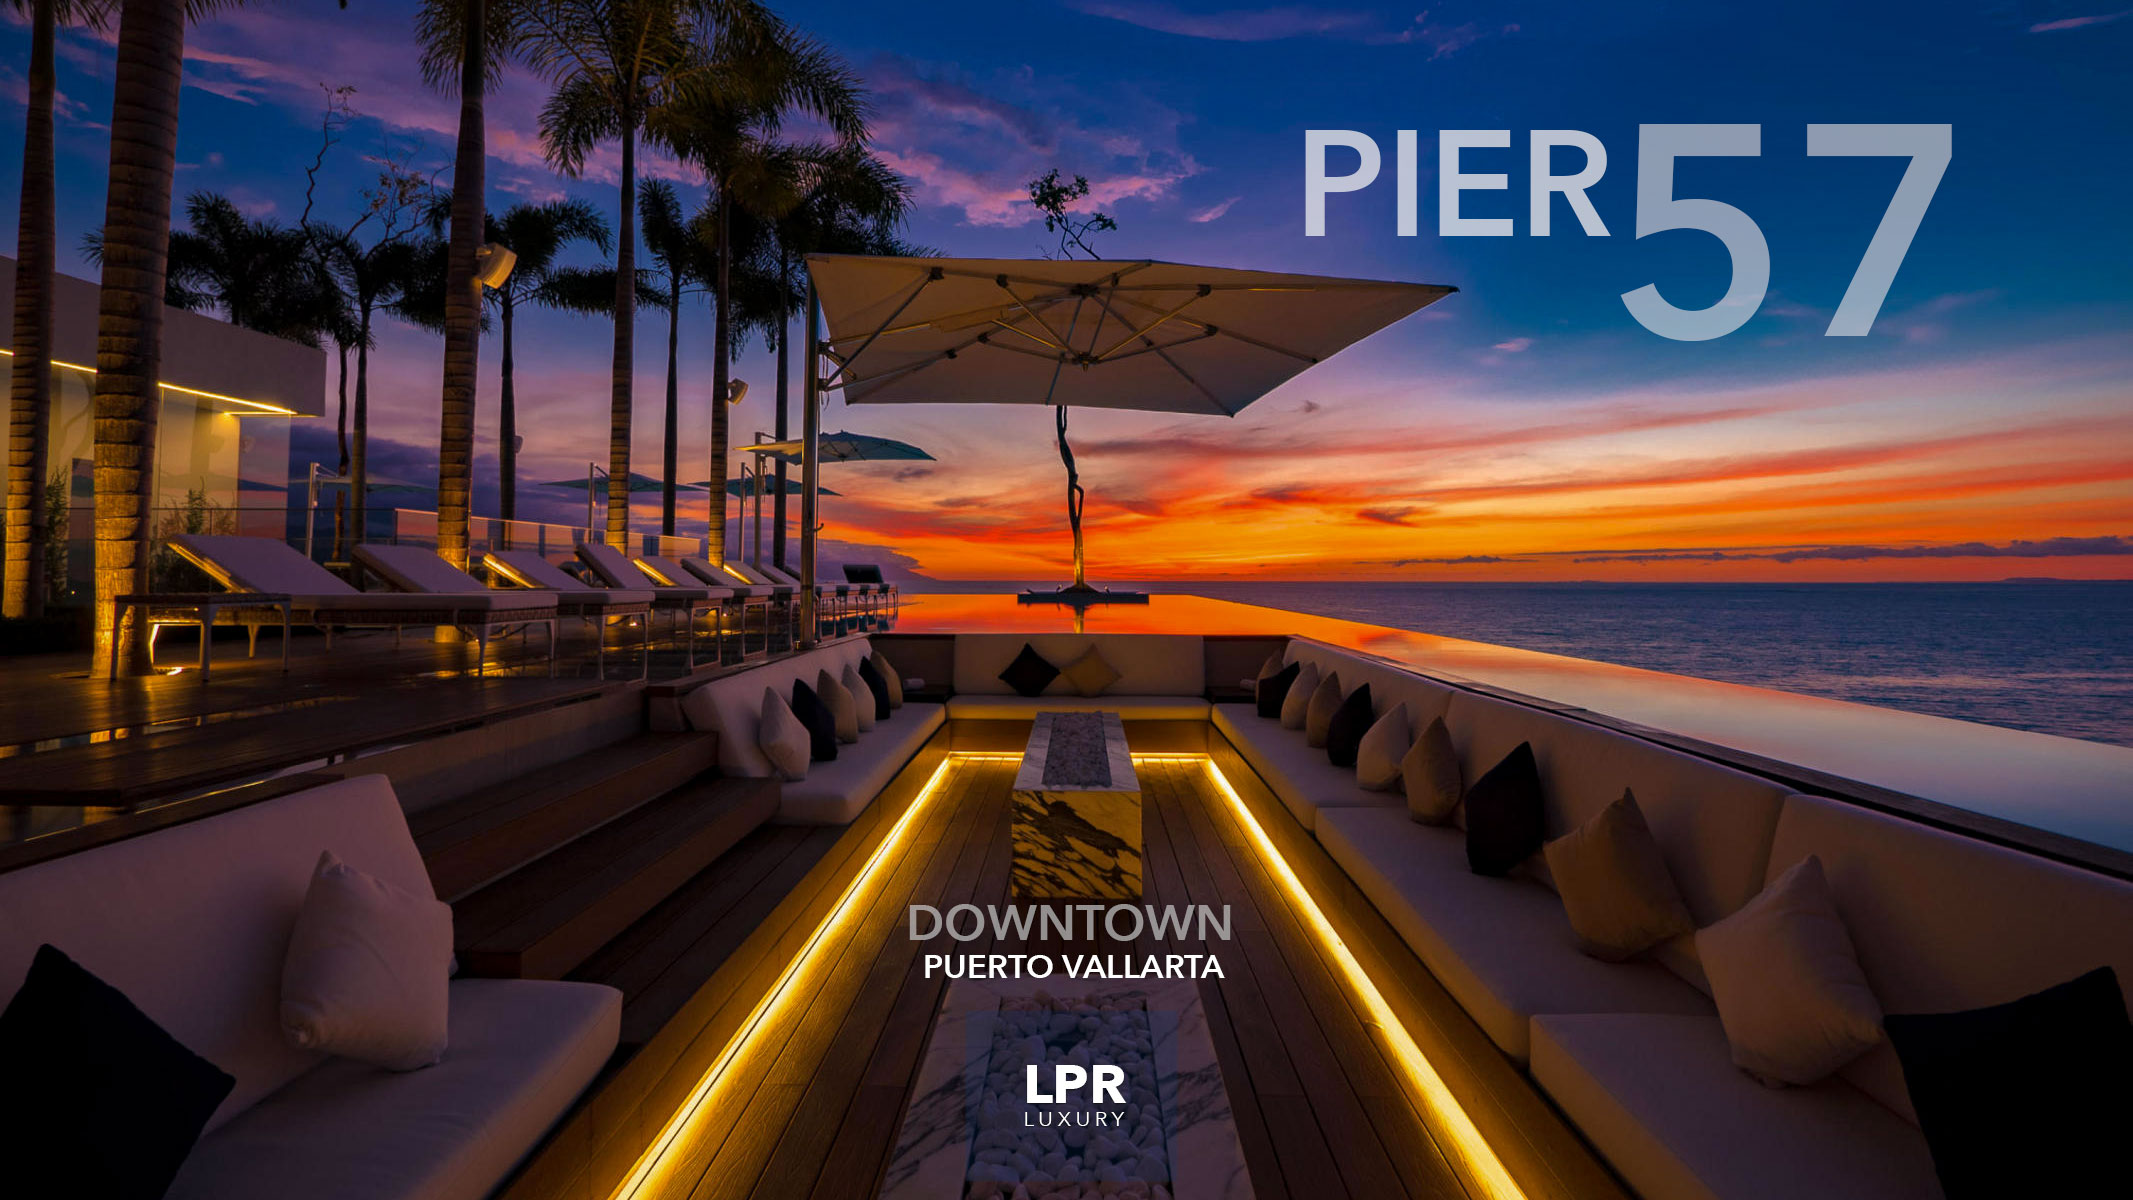 PIER 57 - Downtown Puerto Vallarta luxury condos - Rooftop pool and sunset lounge - LPR Luxury Puerto Vallarta real estate and vacation rentals.